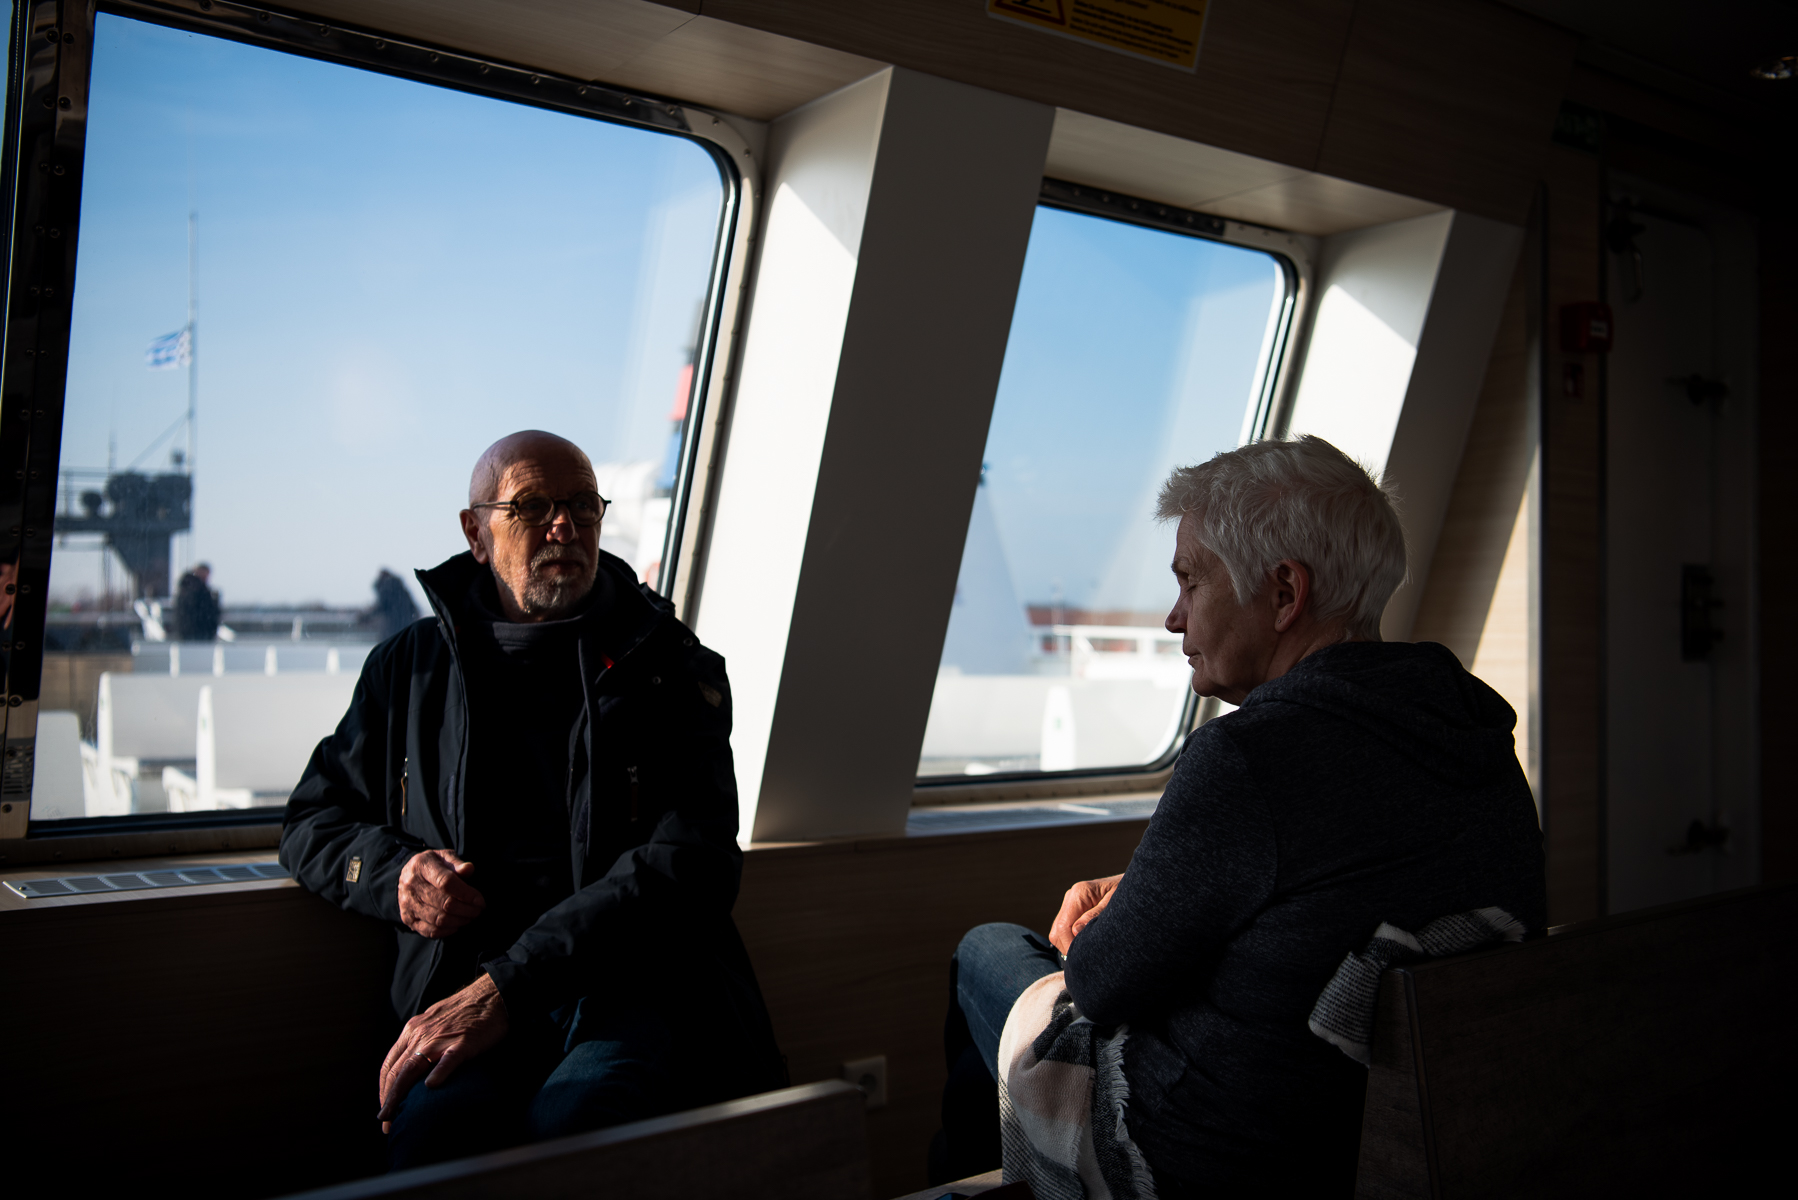 After long walks on the island of Norderney, mom and dad wait for the ferry's departure back to the mainland. Here, they sit in the observation area on the upper deck. Norderney, Germany, March 5, 2020.